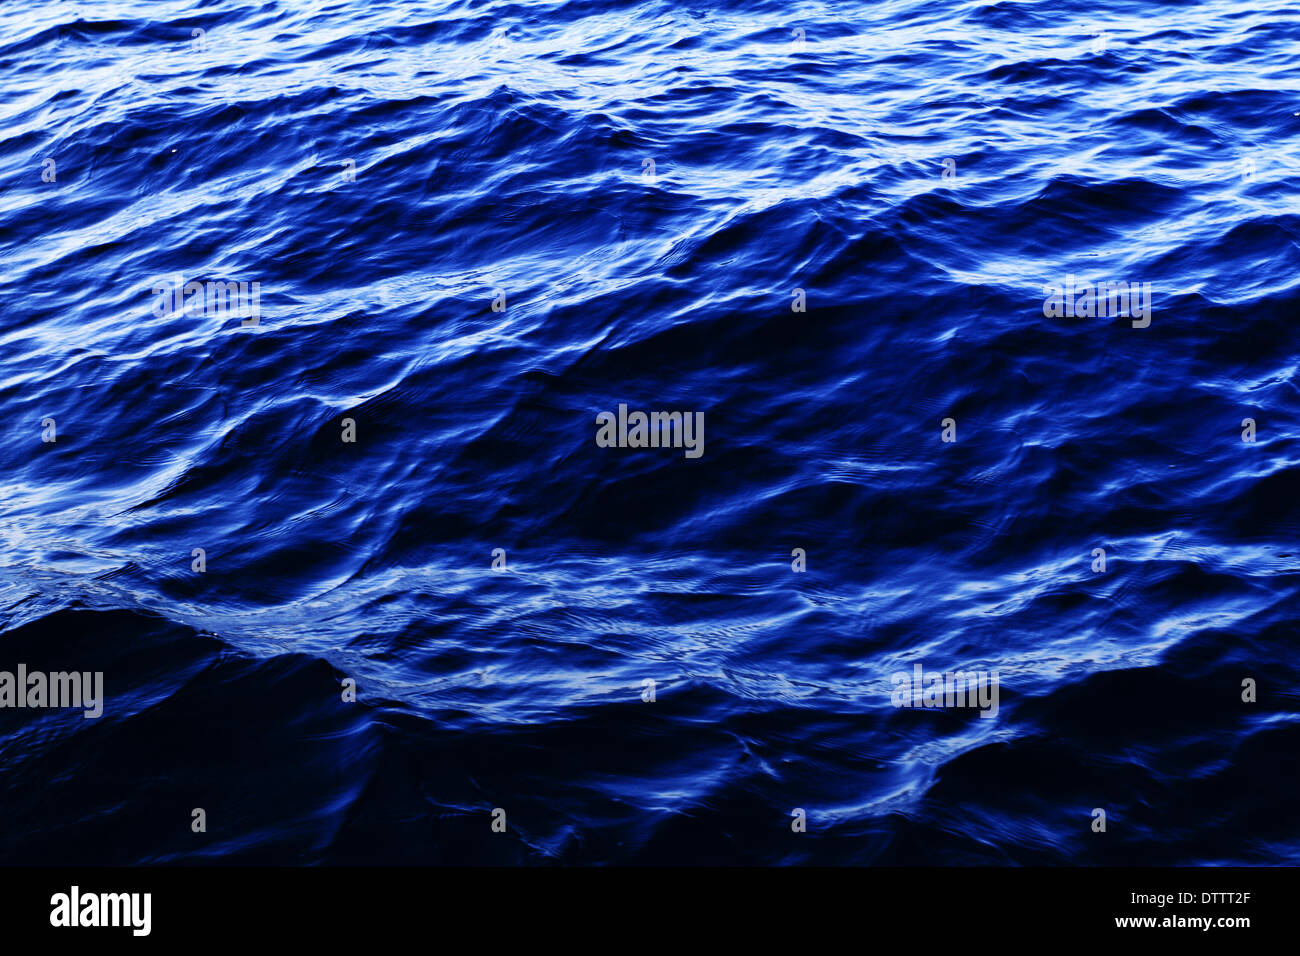 Photo of blue water background with ripples - Stock Image